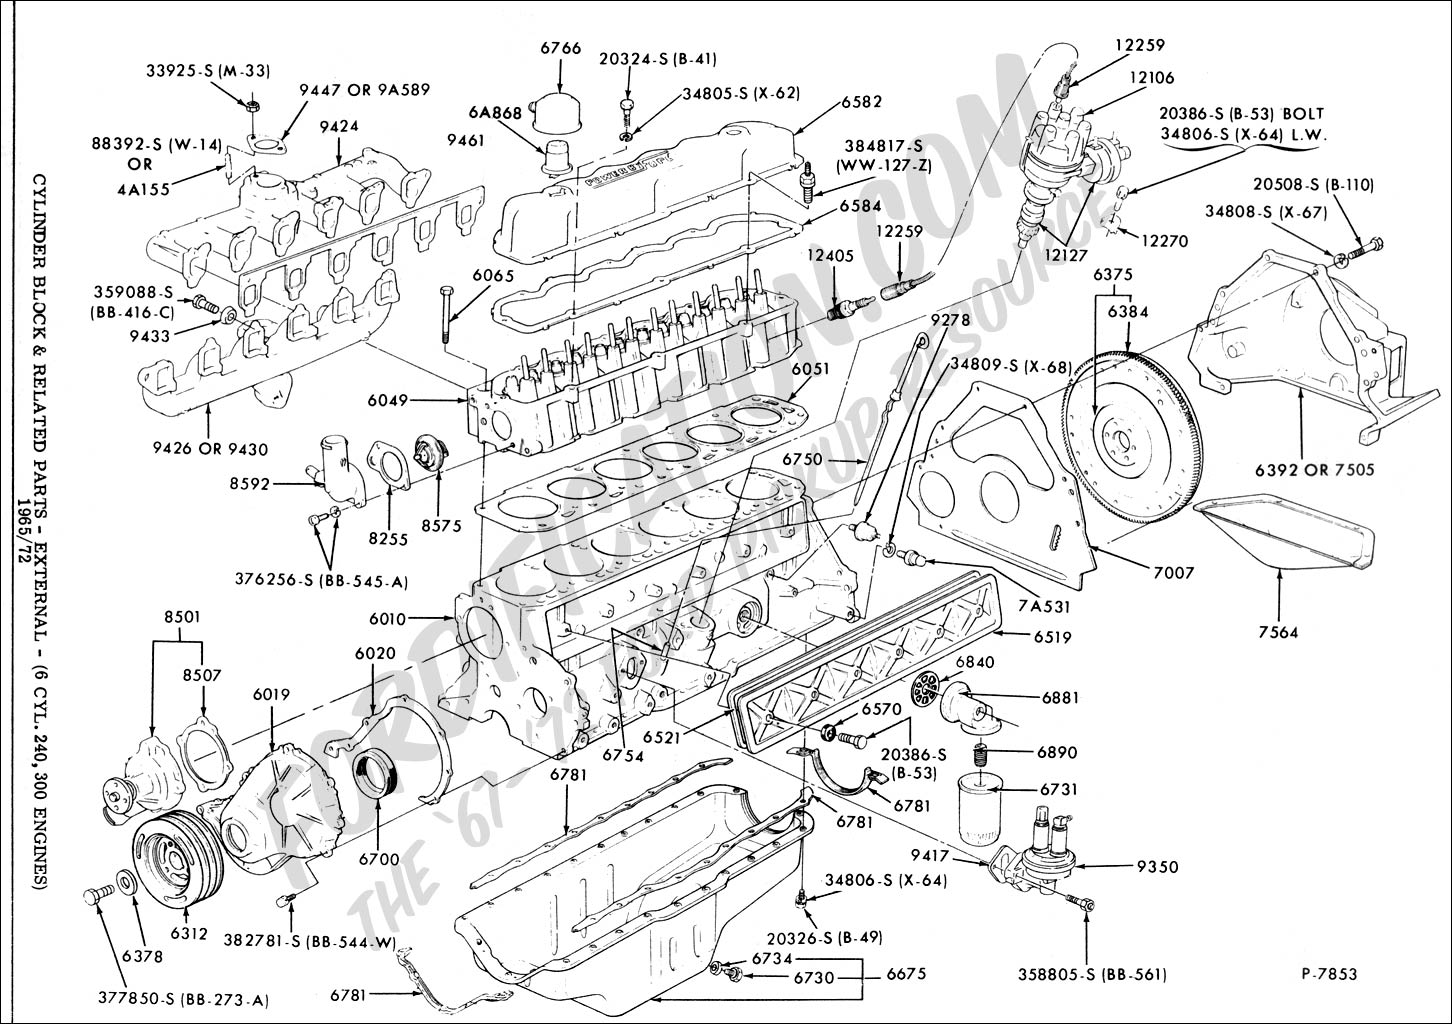 Ford Straight 6 300 Ci Engine Diagram 1987 Ford F-150